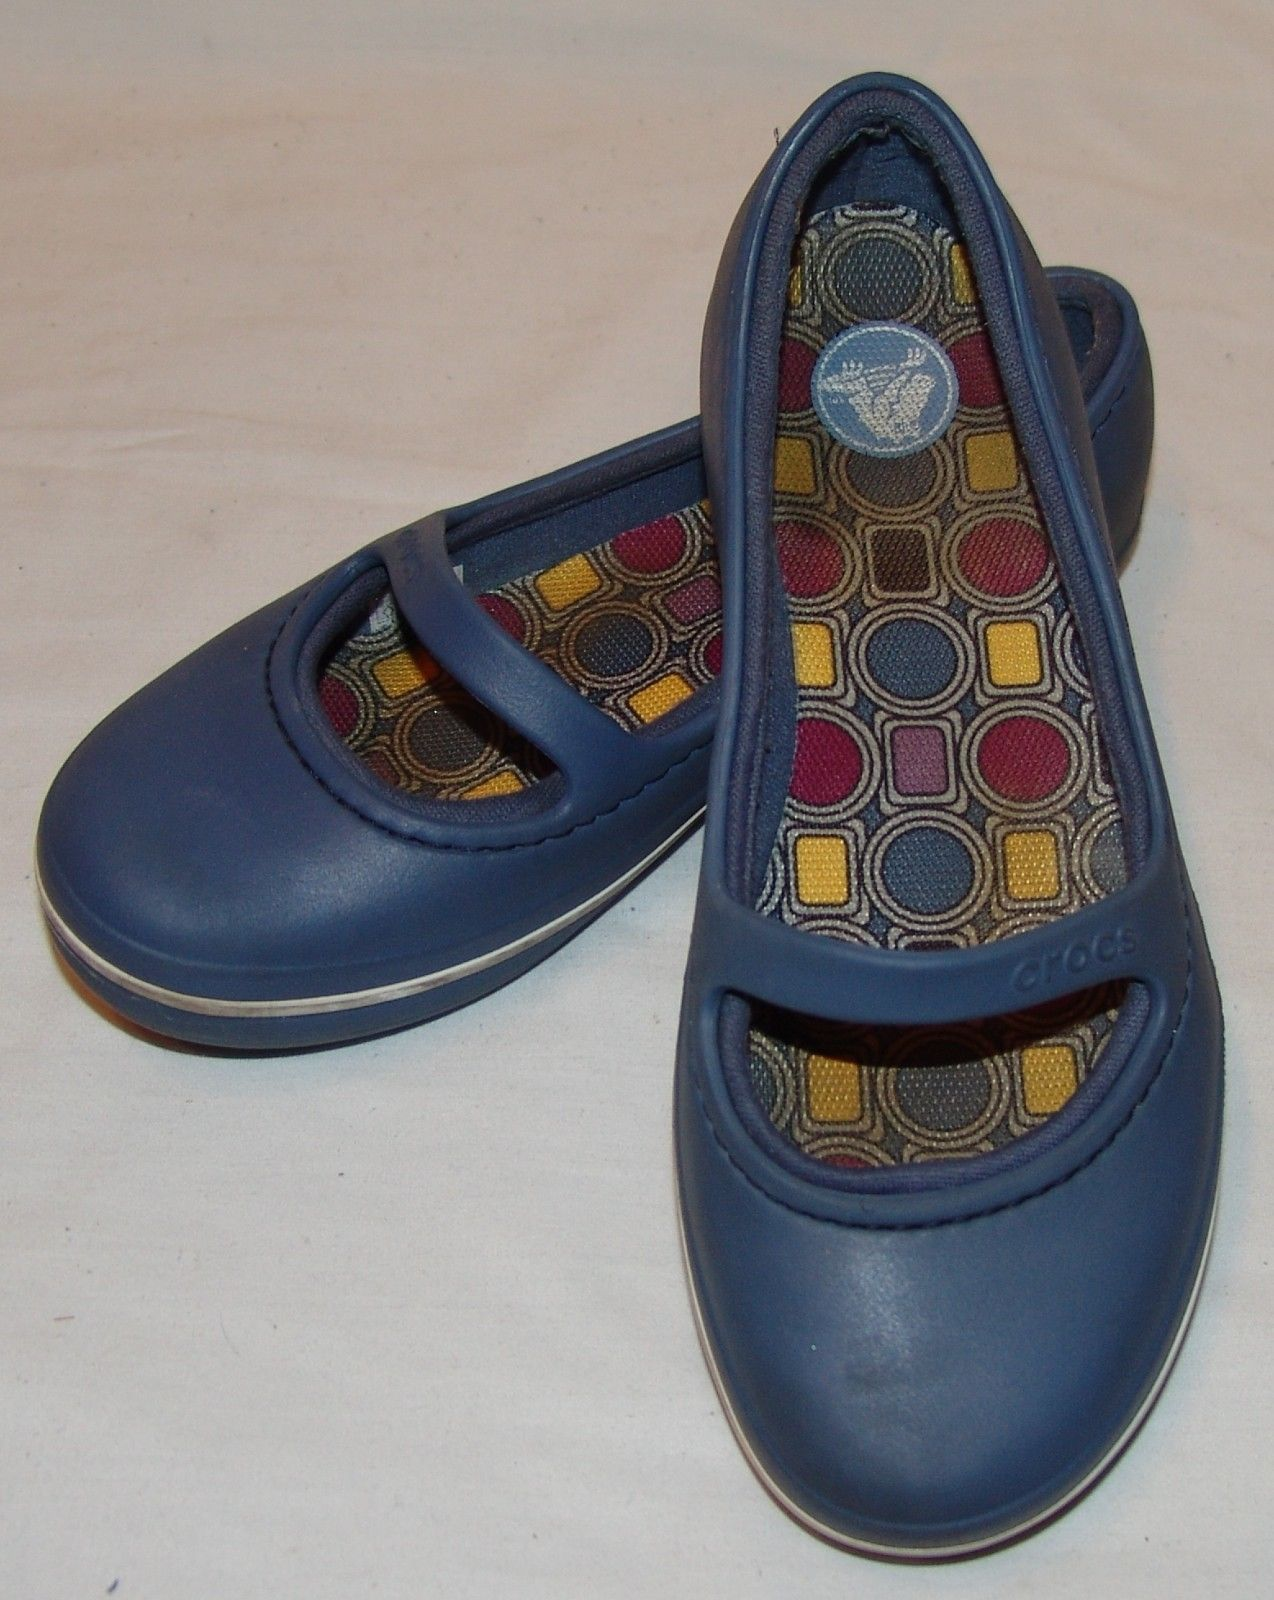 95e38002a11 Crocs Womens Blue Slip On Shoes 6 Mary Jane and 50 similar items. S l1600